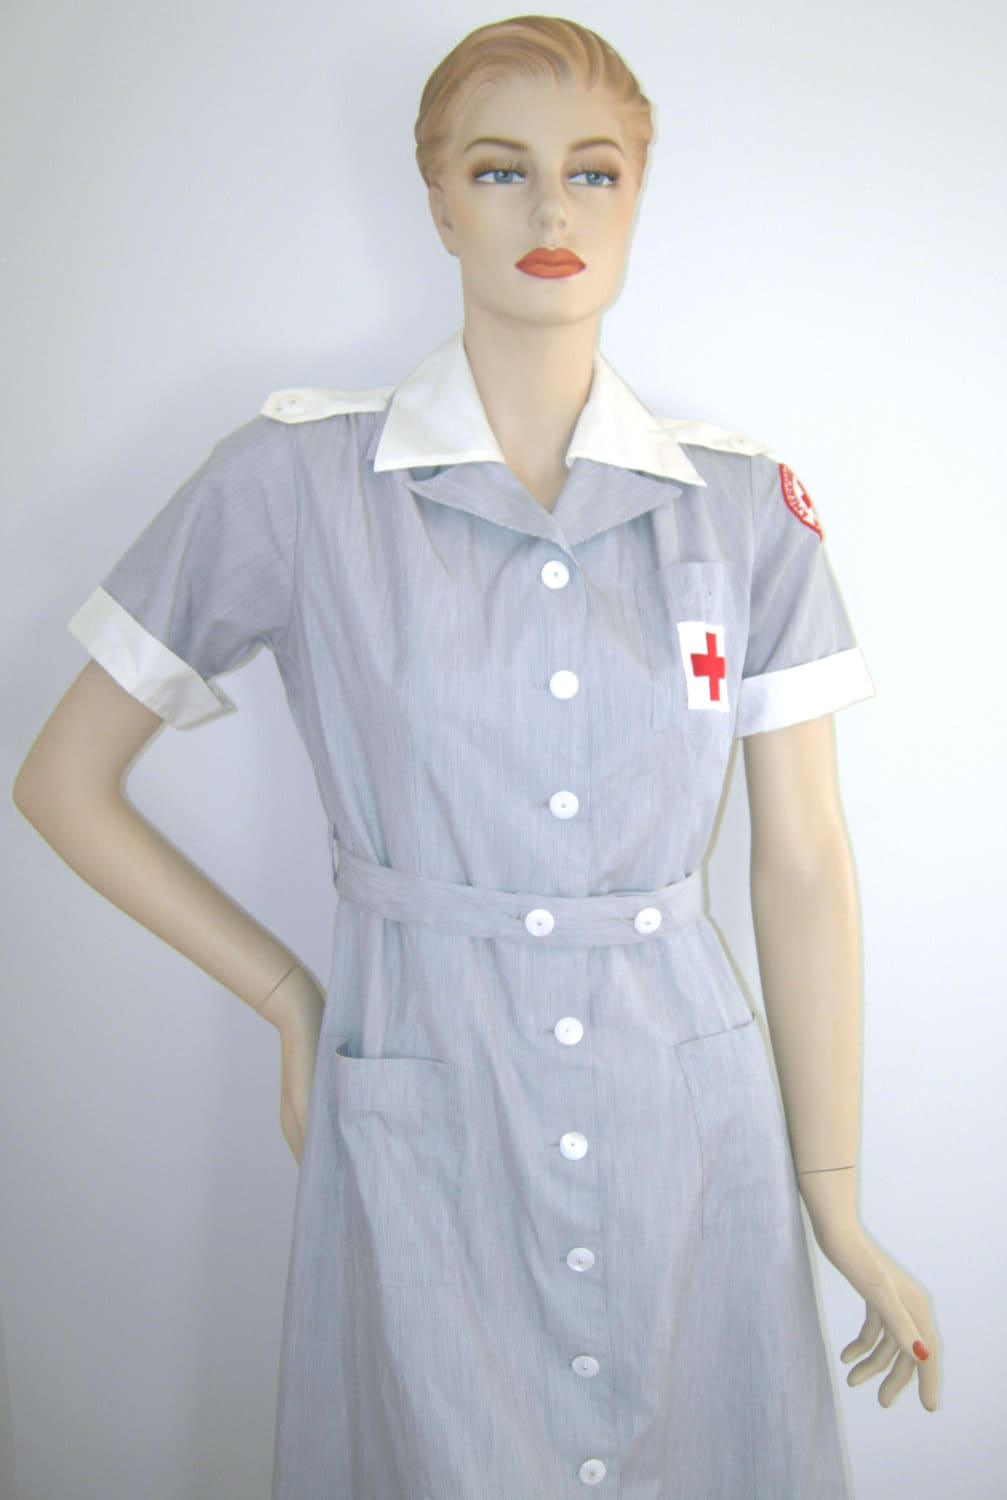 White pinafore apron nurse - Wwii Vintage 1940s 1950s American Red Cross Uniform Volunteer Nurse Military Dress Matching Red Cross Hat Grey White Heather Vintage Size 12